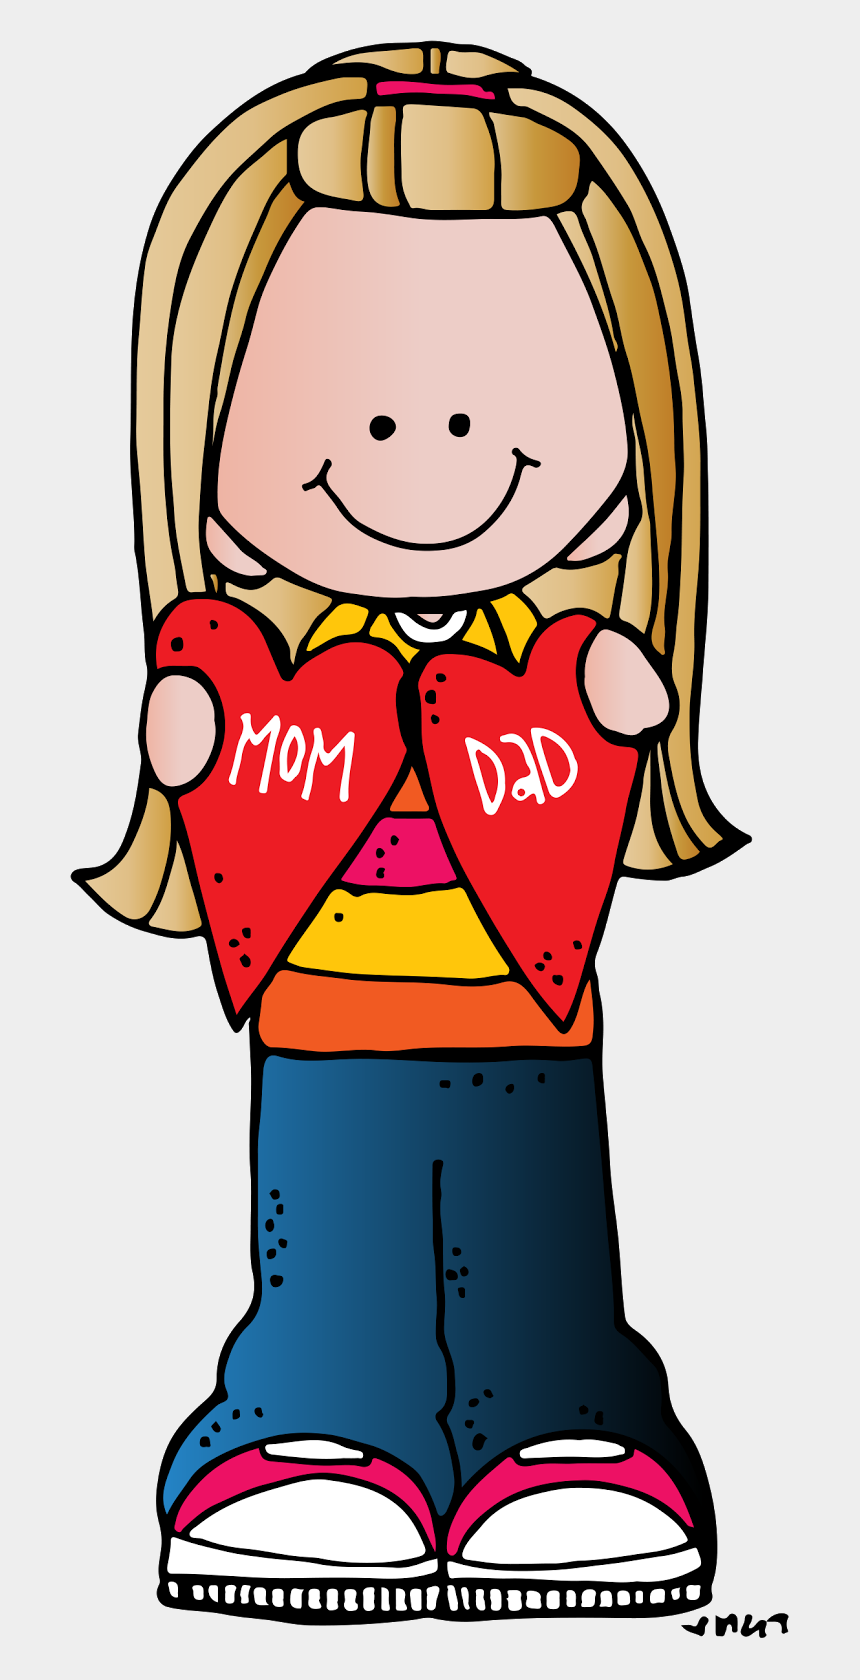 person clip art, Cartoons - Download Kindness Clipart Inspiring Person - Mothers Day Clipart Melonheadz